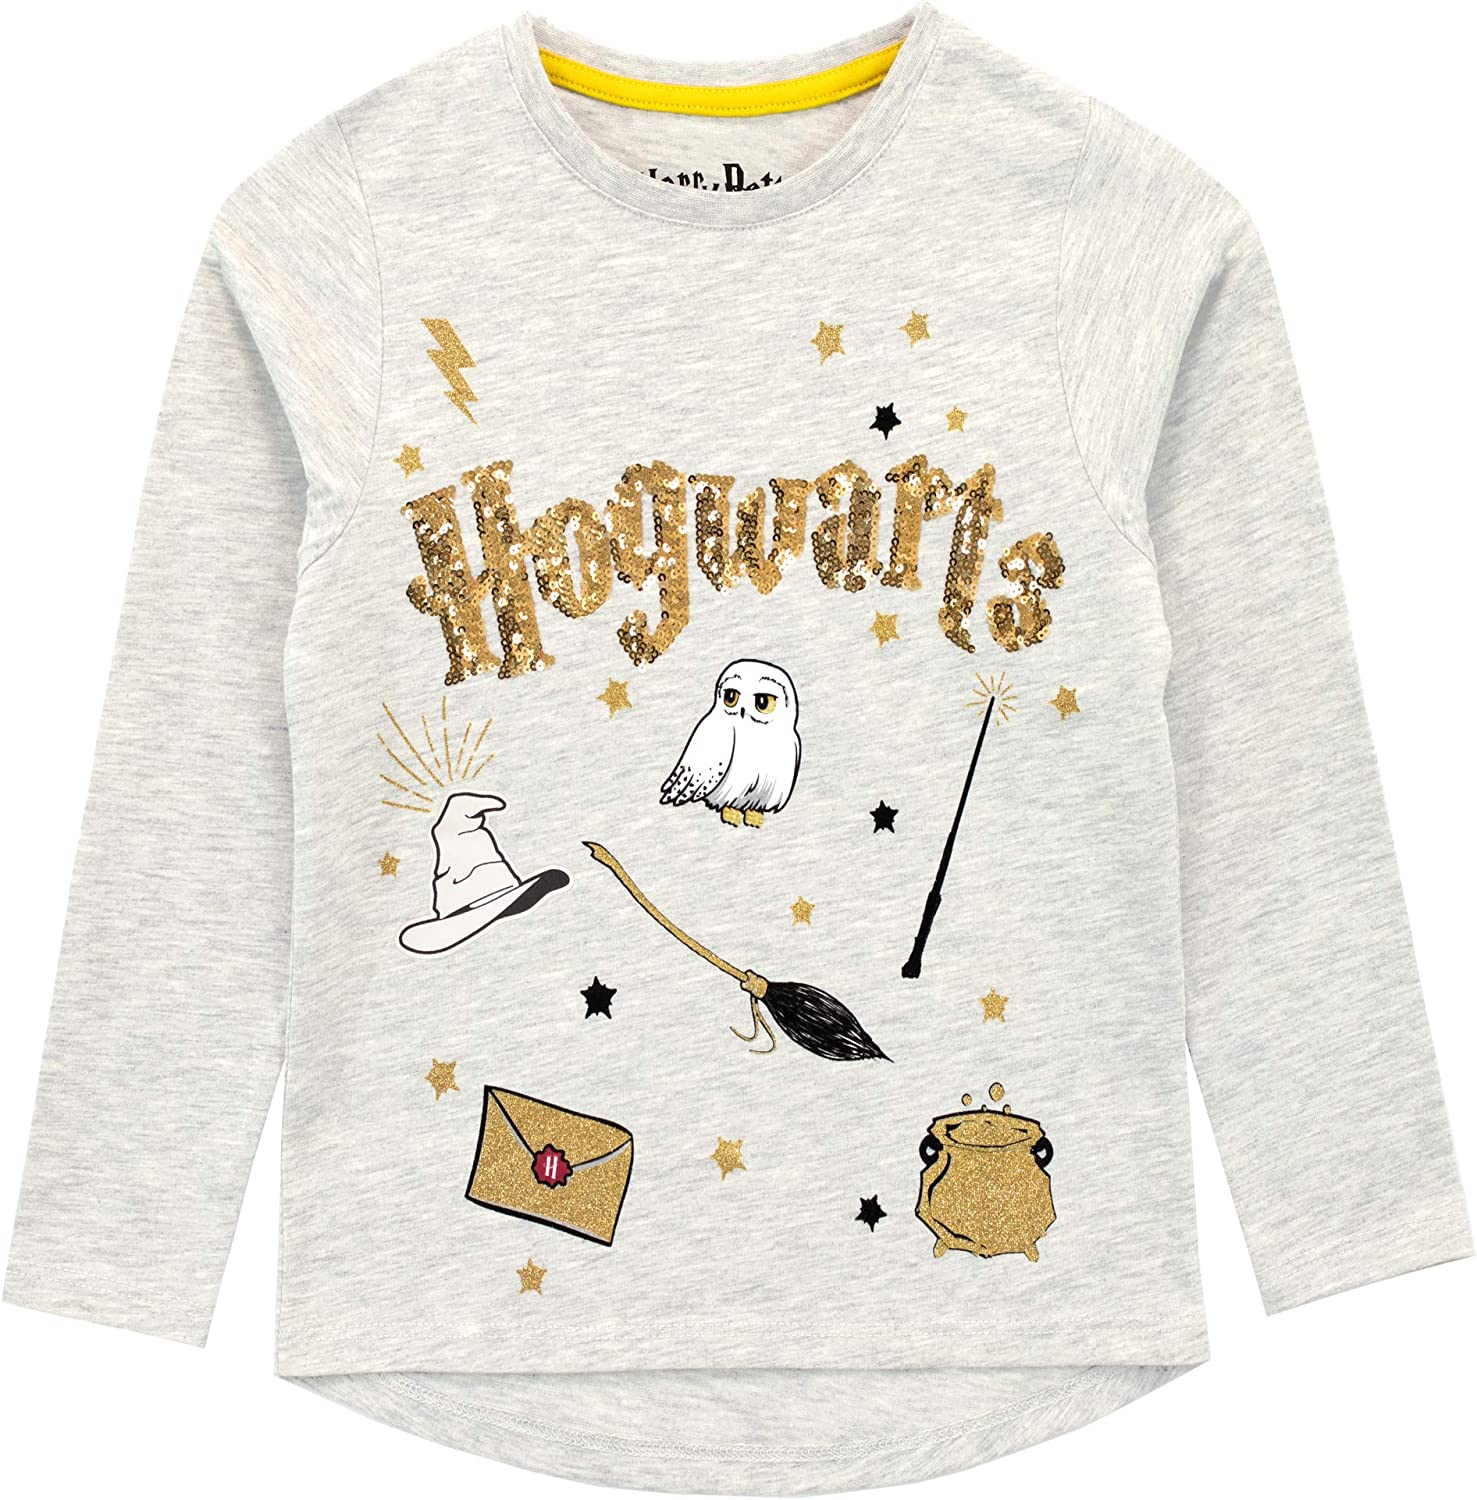 HARRY POTTER Girls Hogwarts Long Sleeved Top